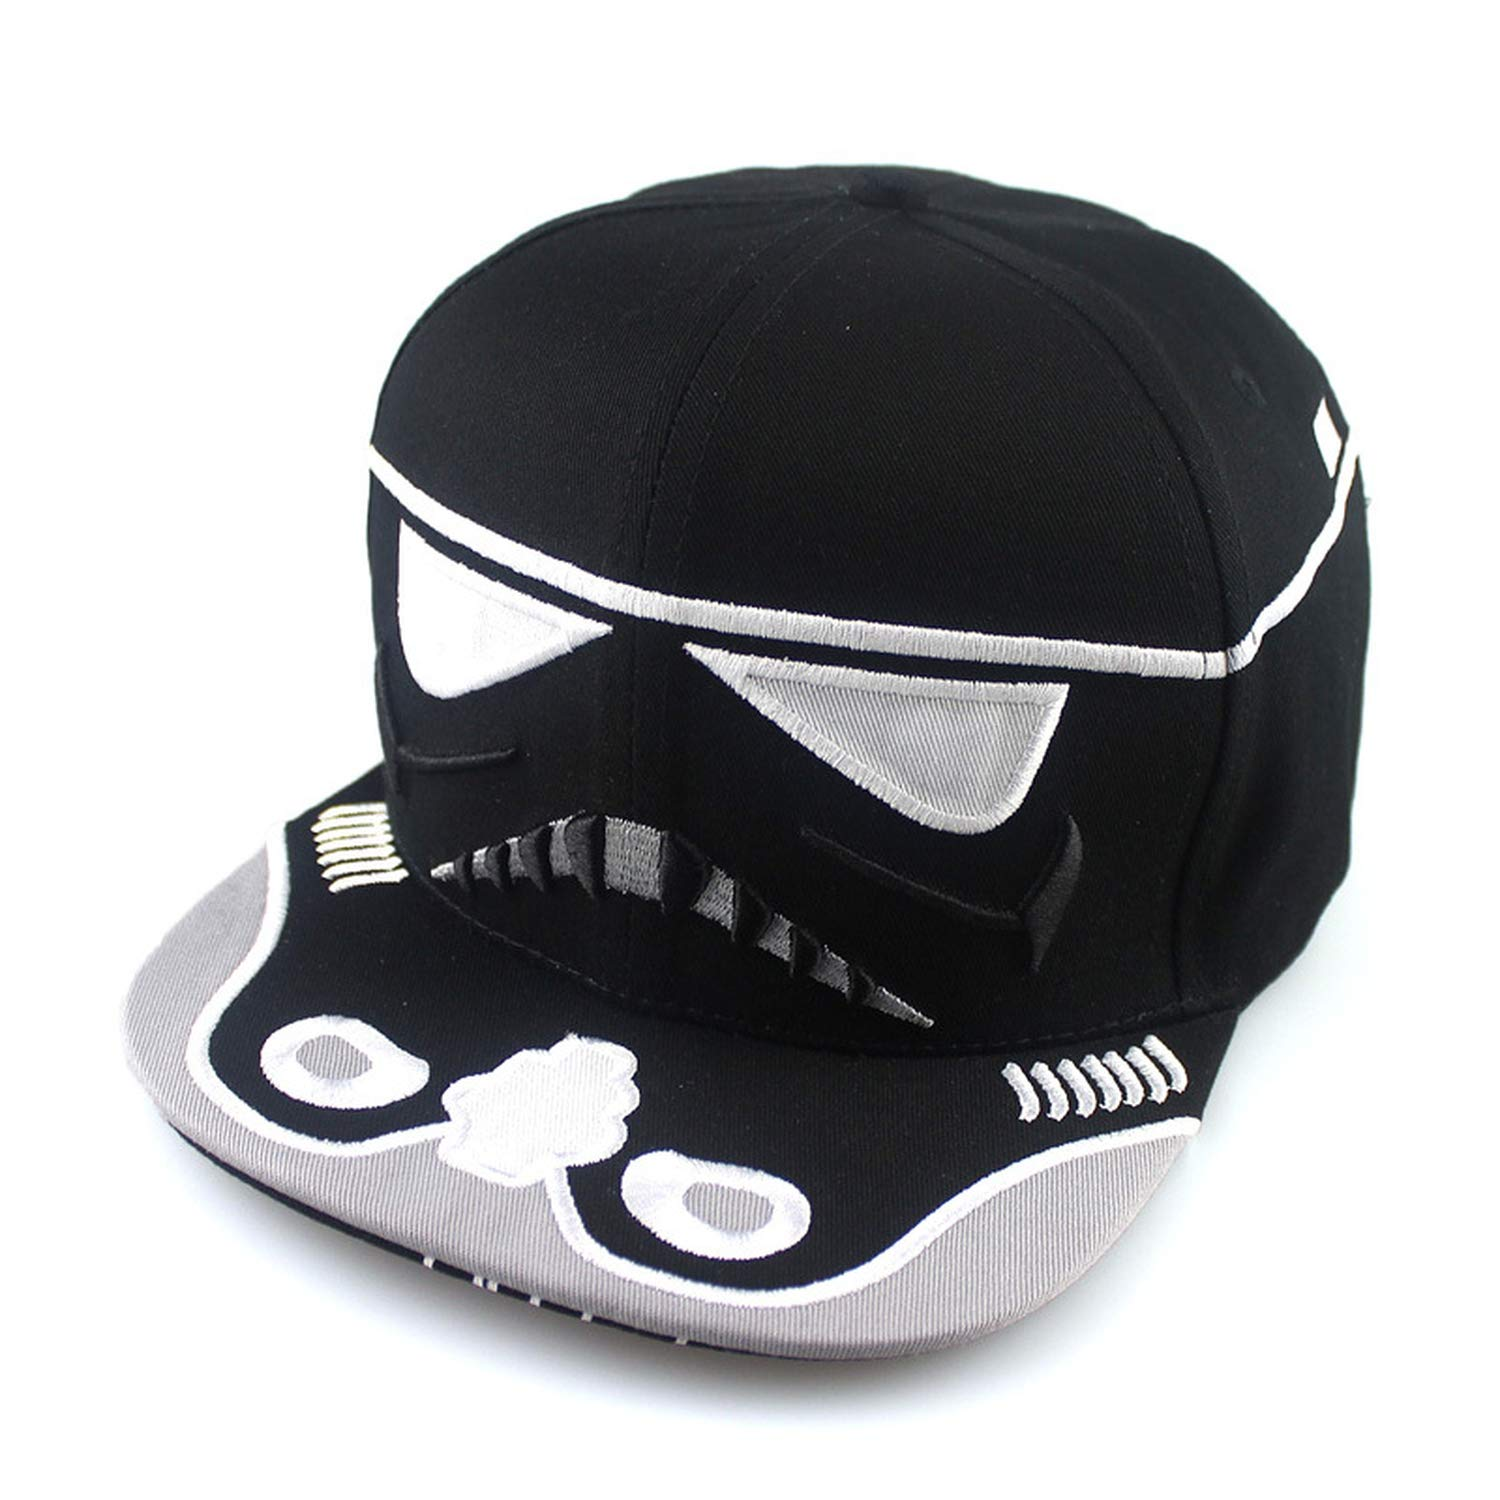 Star Wars Snapback Caps Cool Strapback Letter Baseball Cap Trooper Hip-hop Hats for Men Women